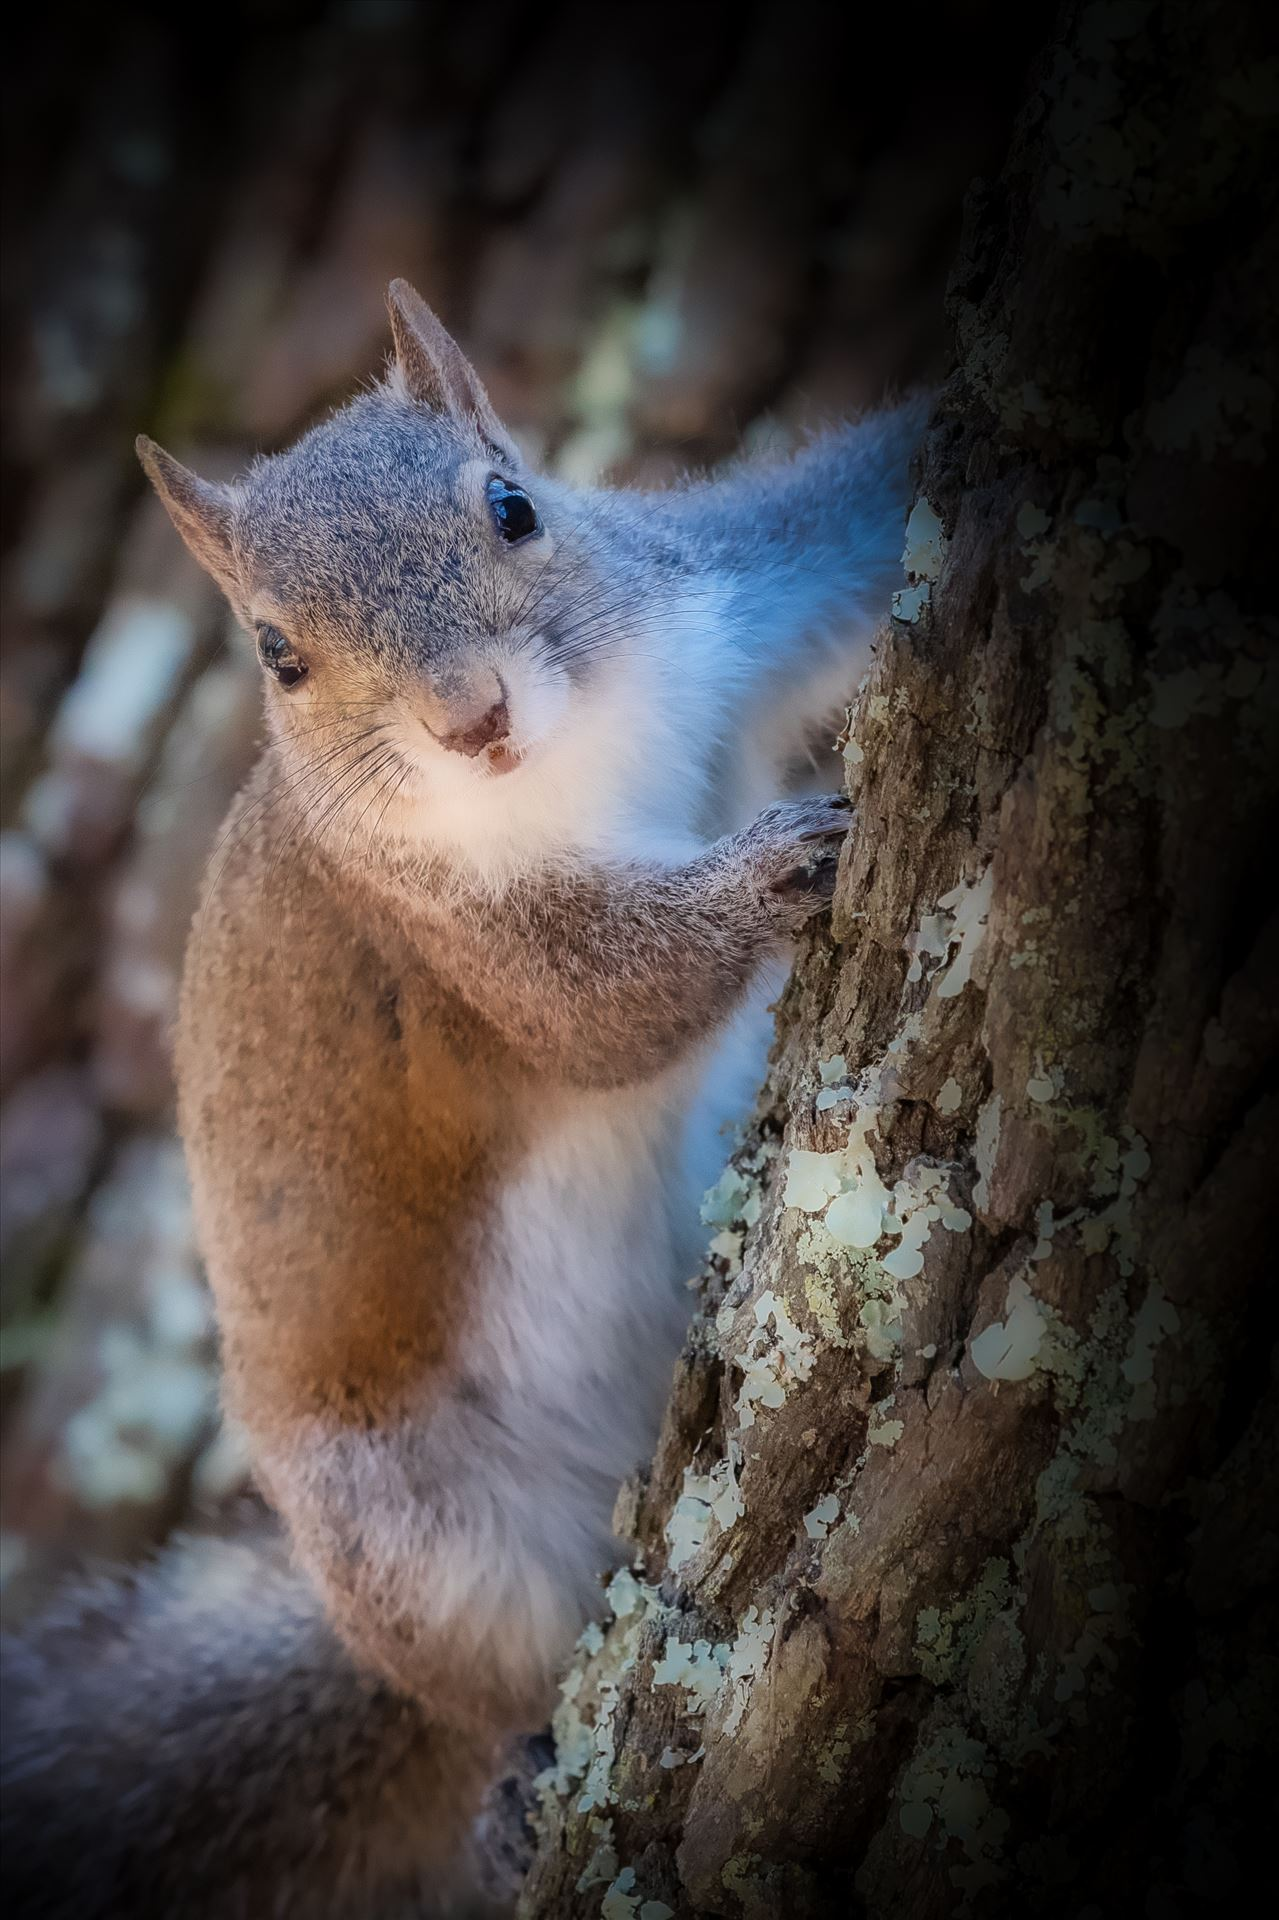 Squirrel Close up of squirrel peeking out from behind oak tree by Terry Kelly Photography